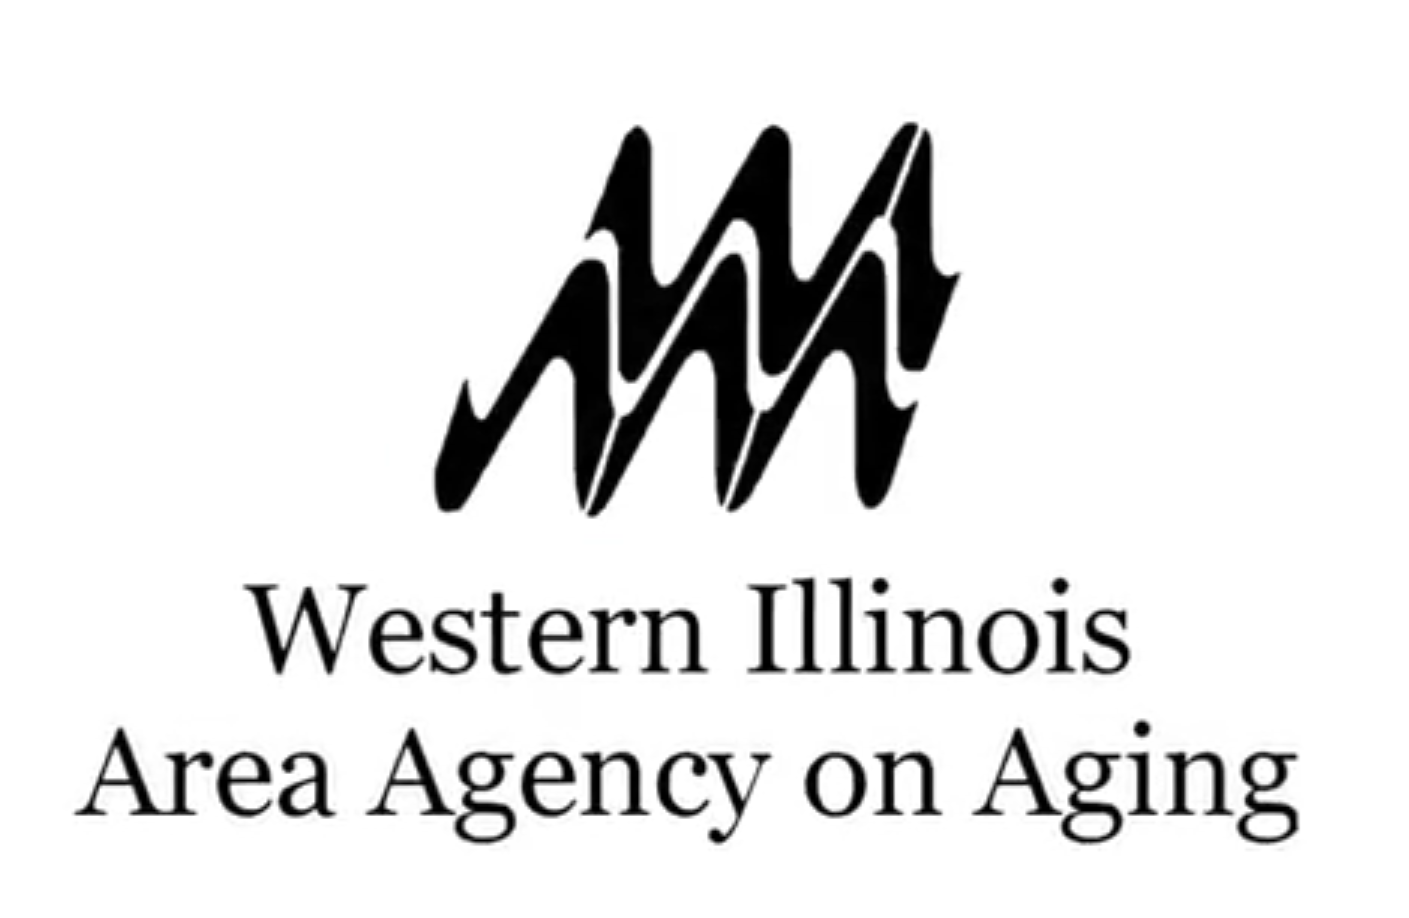 Western Illinois Agency on Aging